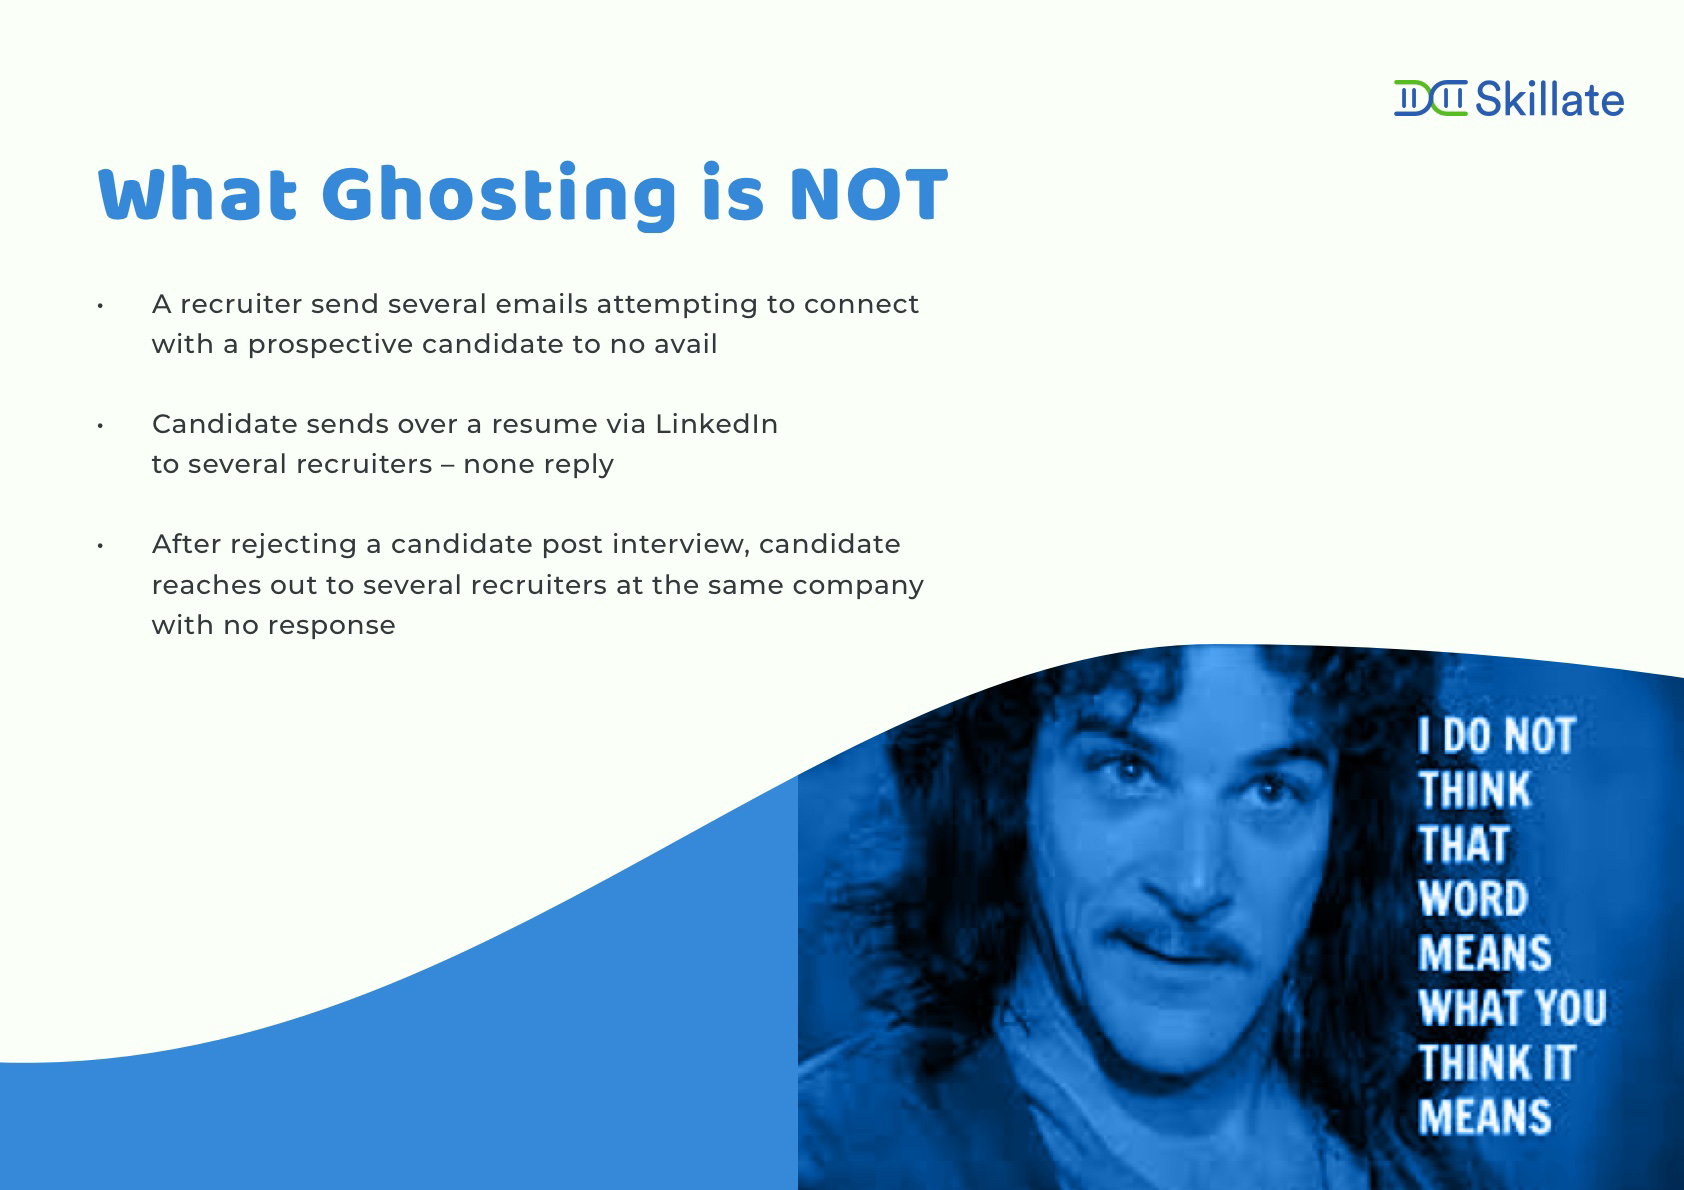 What is not employee ghosting?